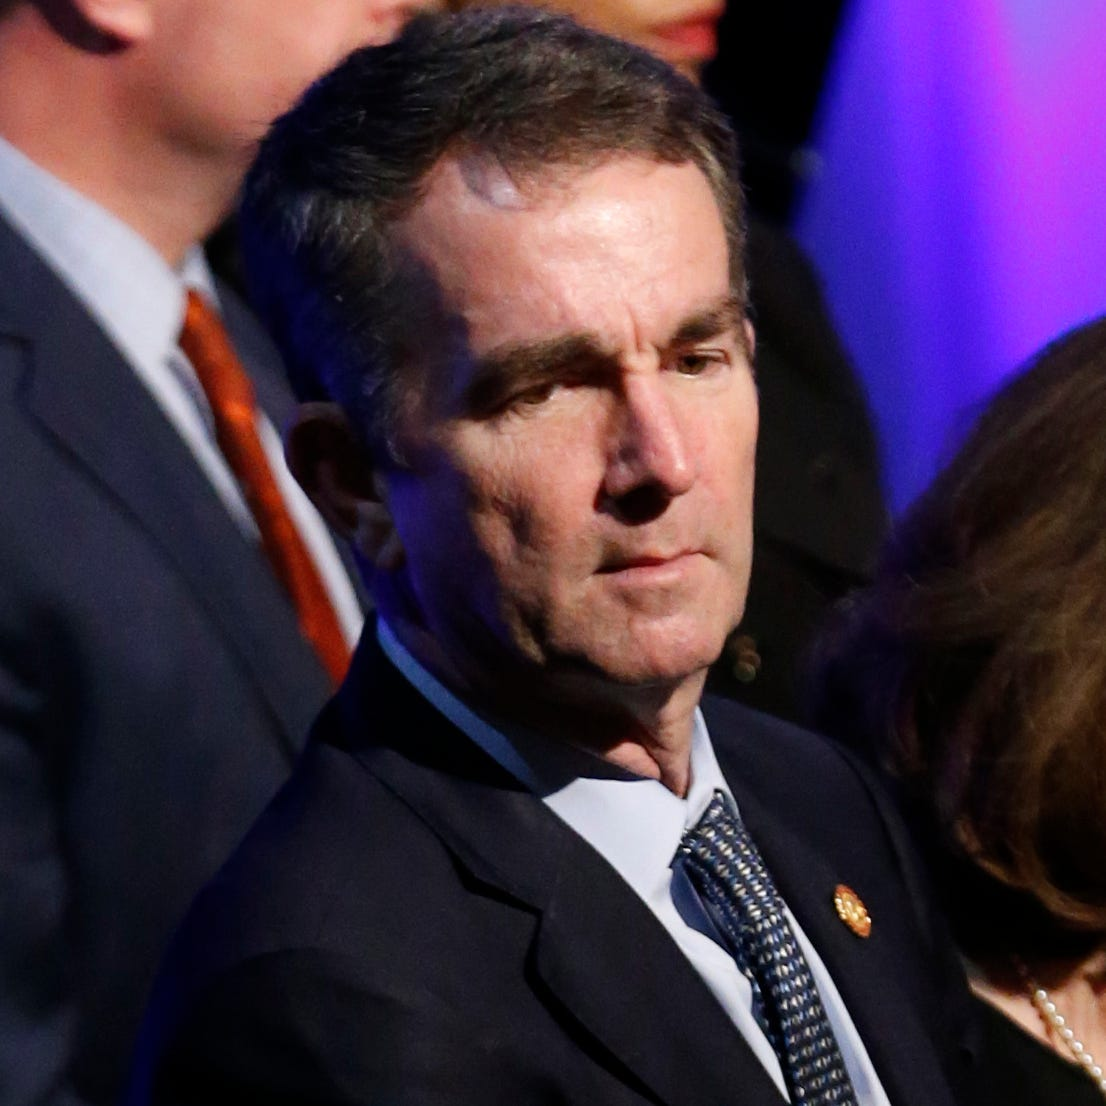 Virginia Gov. Ralph Northam, left, and his wife Pam, attend the funeral of Virginia State Trooper Lucas B. Dowell at the Chilhowie Christian Church in Chilhowie, Va., Feb. 9, 2019.